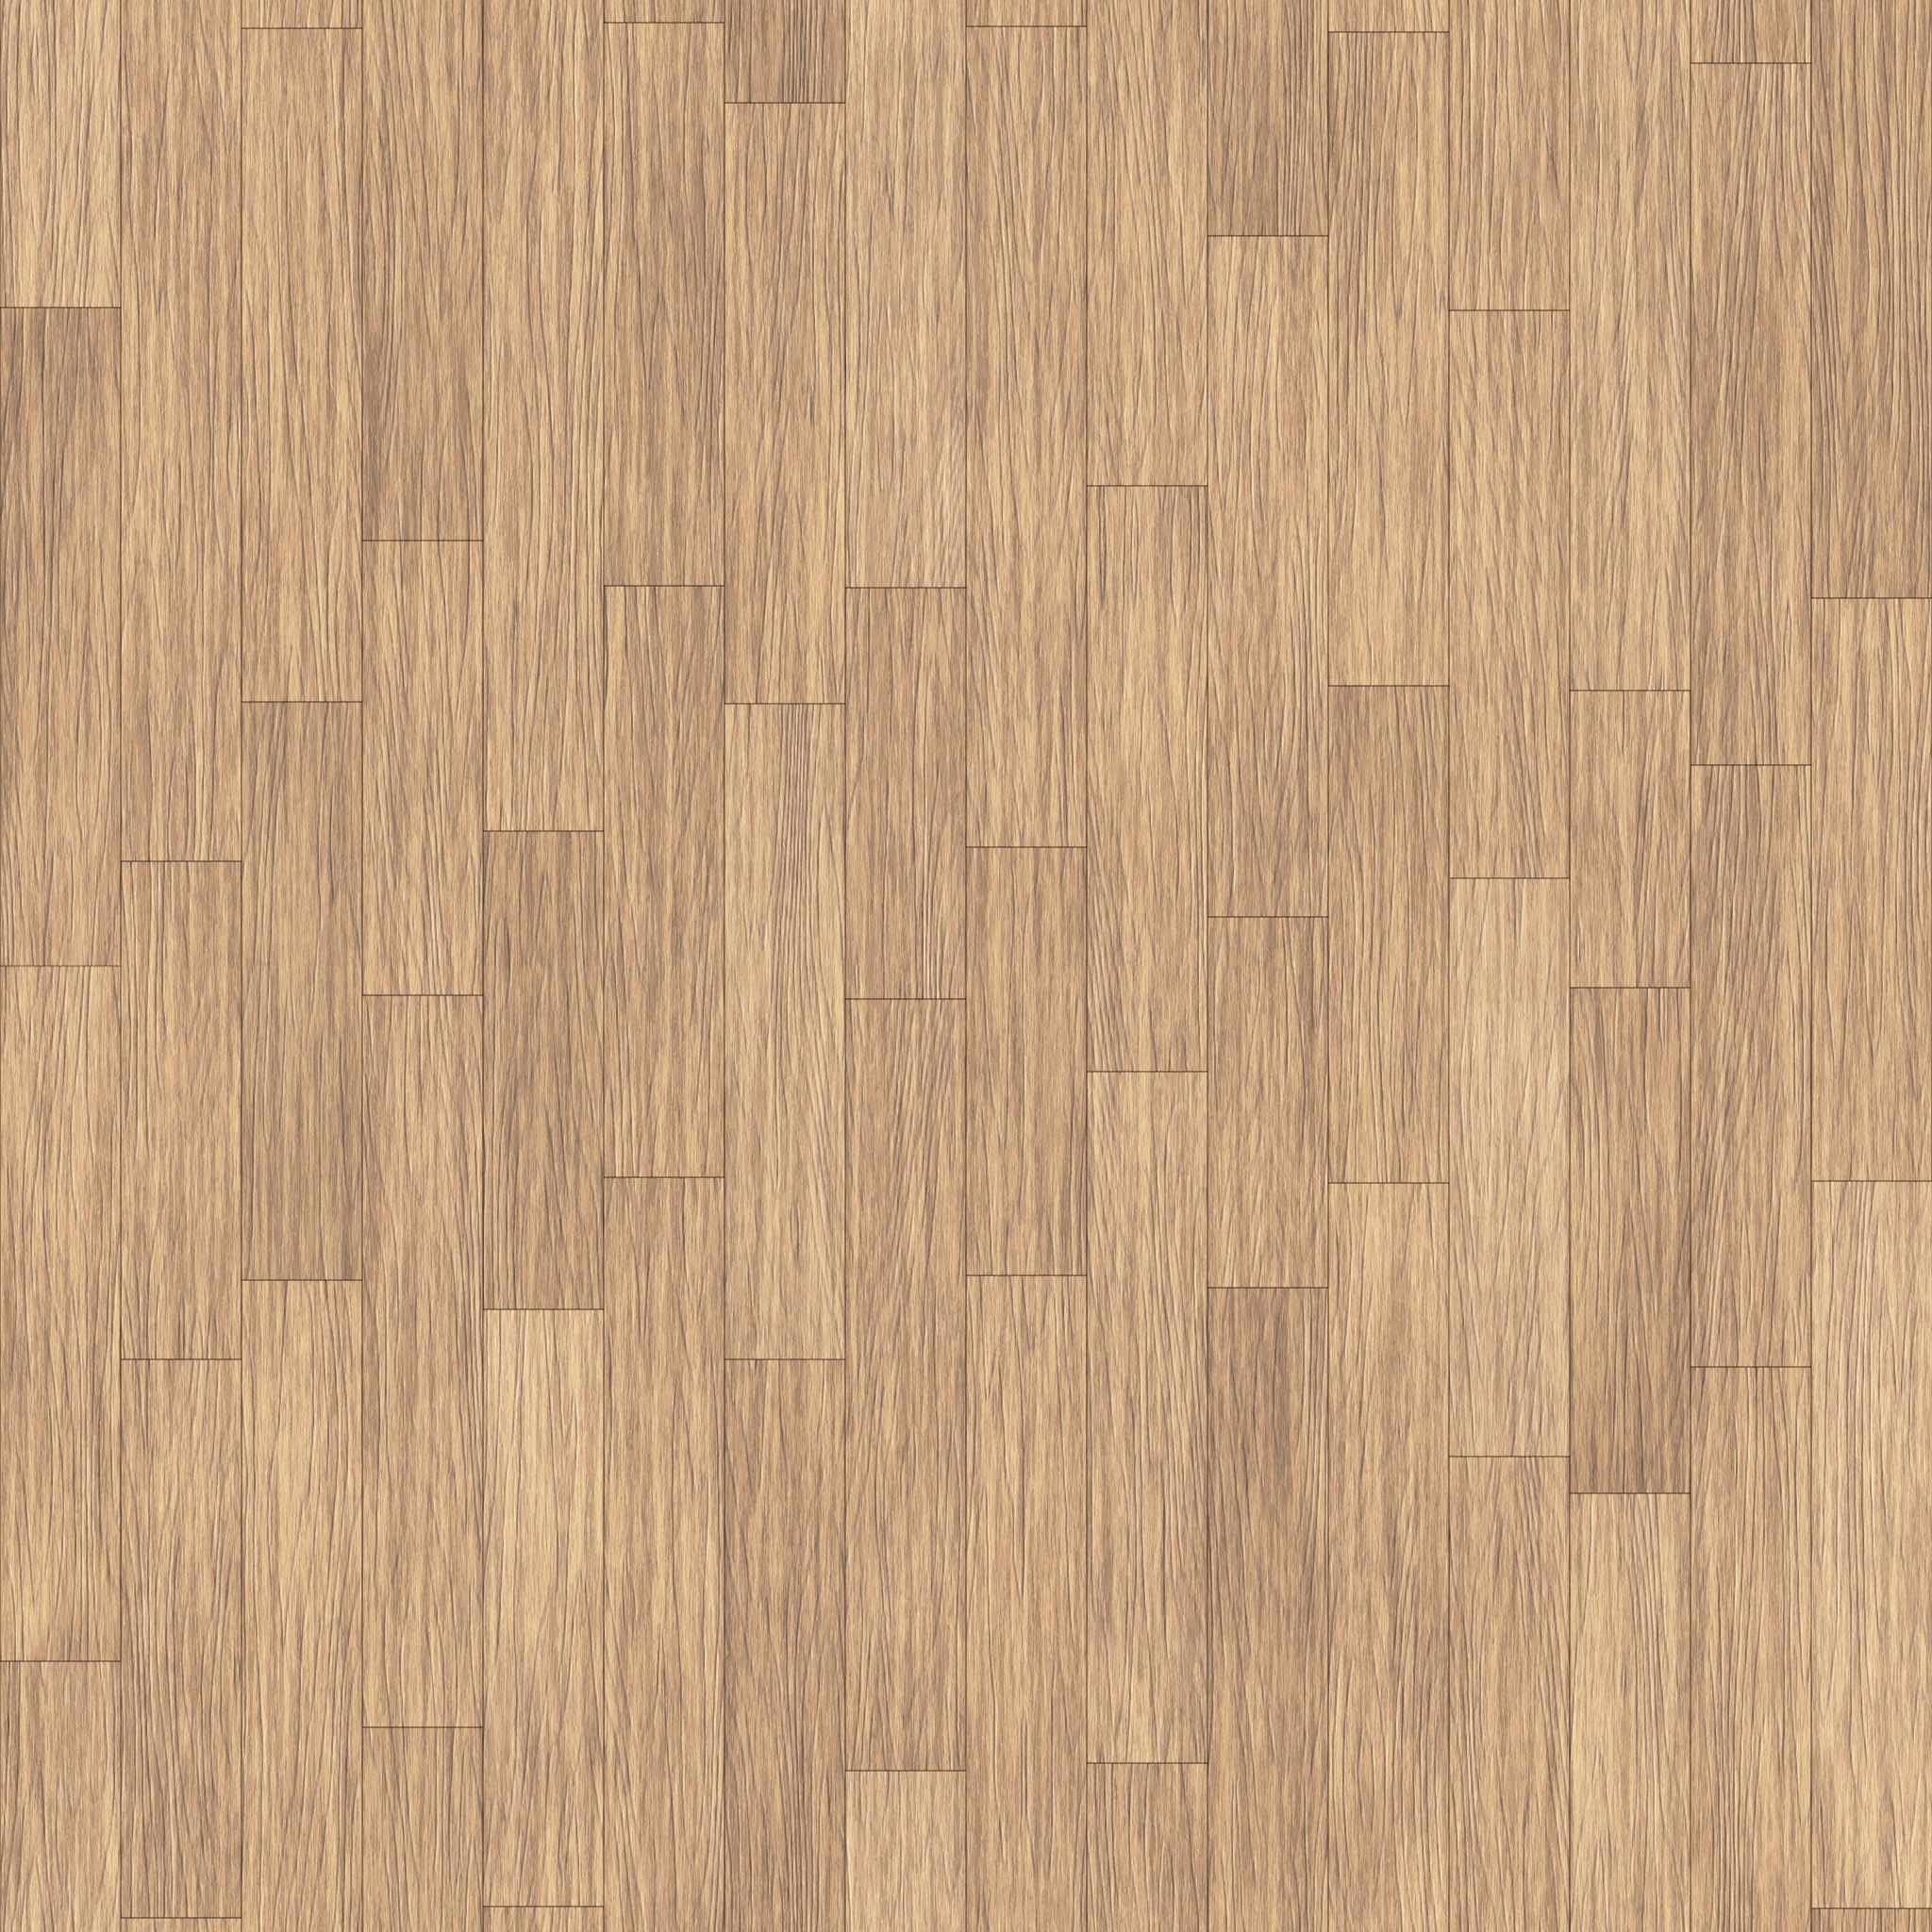 seamless light wood floor. bright wooden floor texture tileable 2048x2048 by fabooguy d6z6f7n jpg  2048 L I B Pinterest Georgian townhouse Woods and Wood flooring